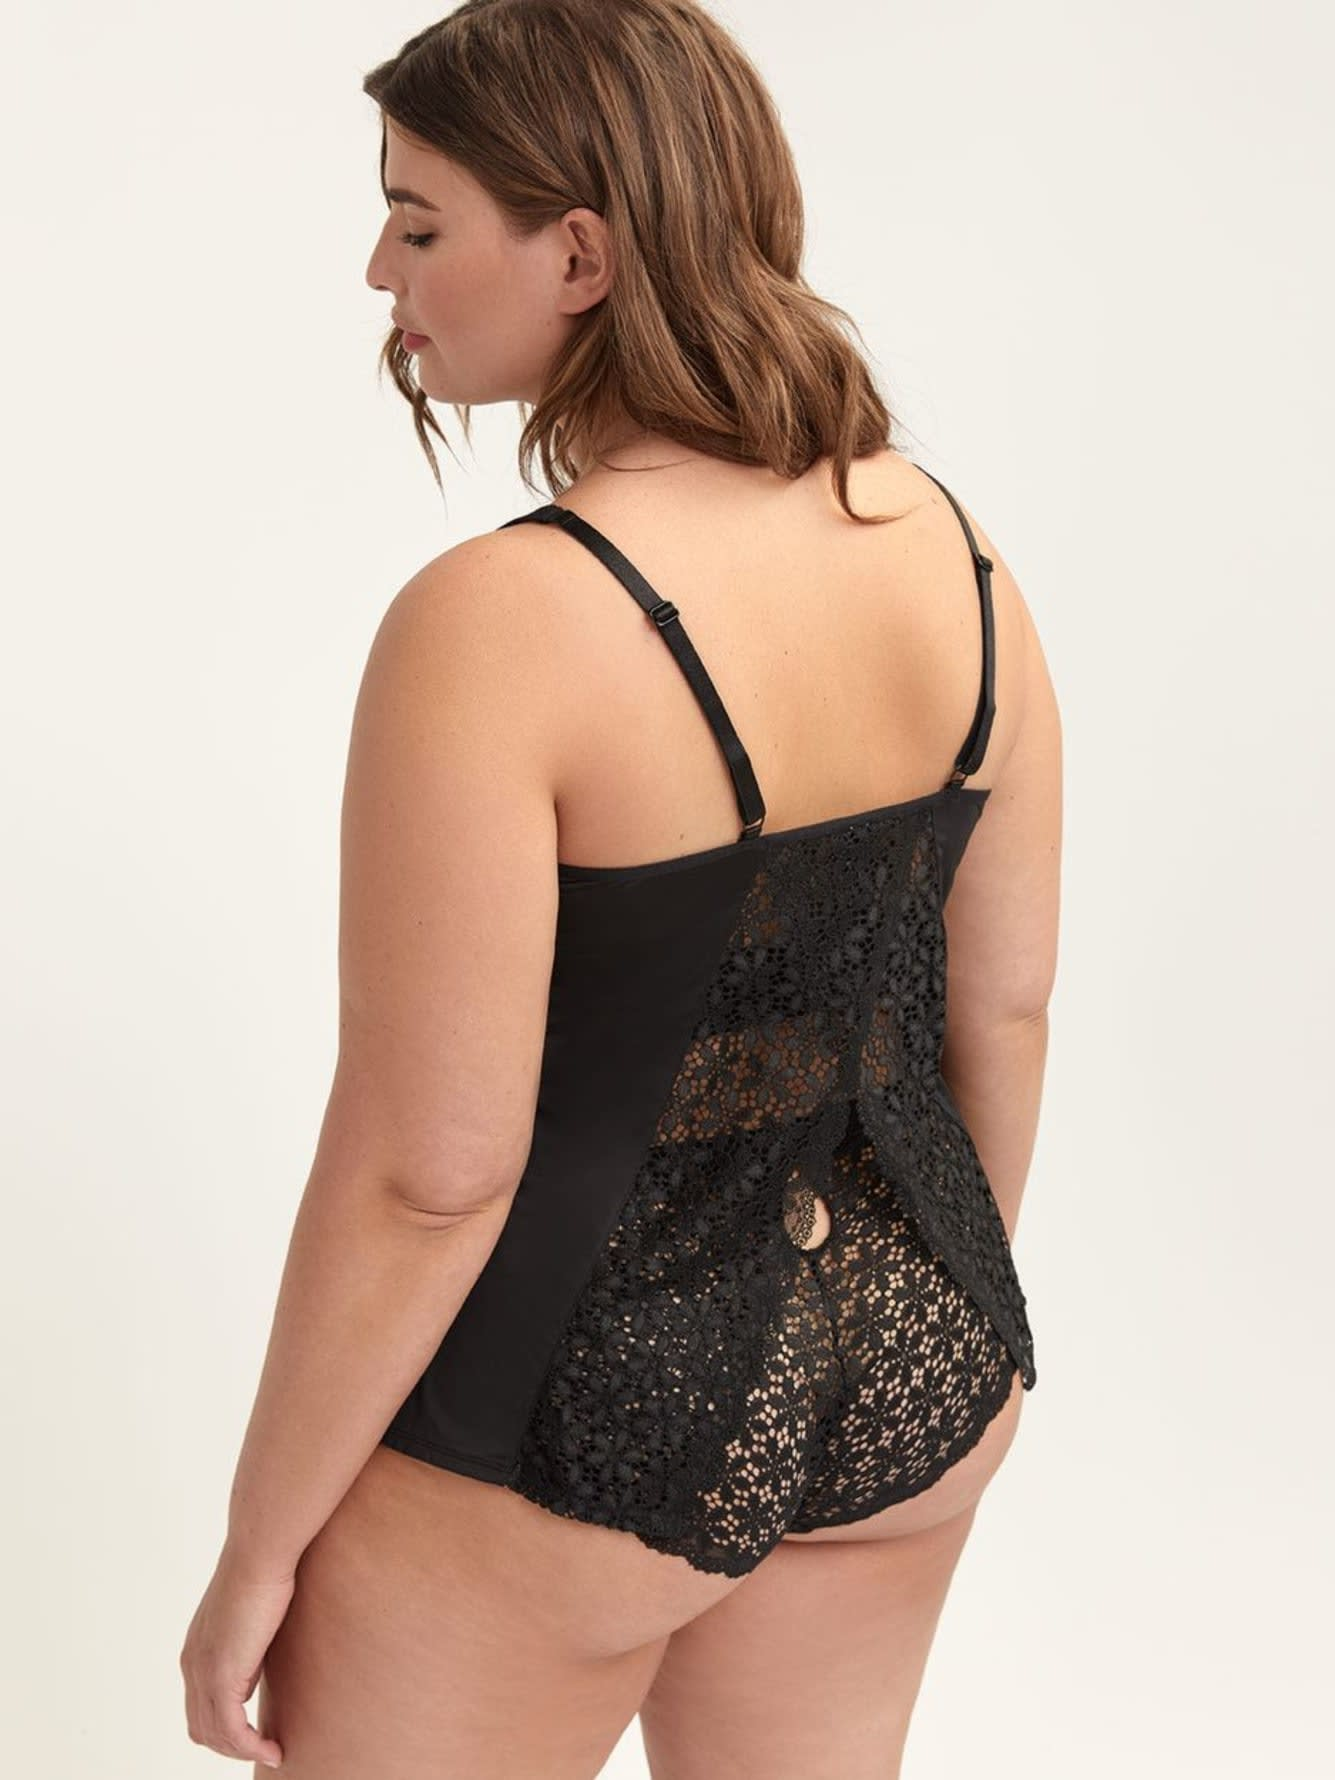 Camisole de nuit avec dentelle - Ashley Graham